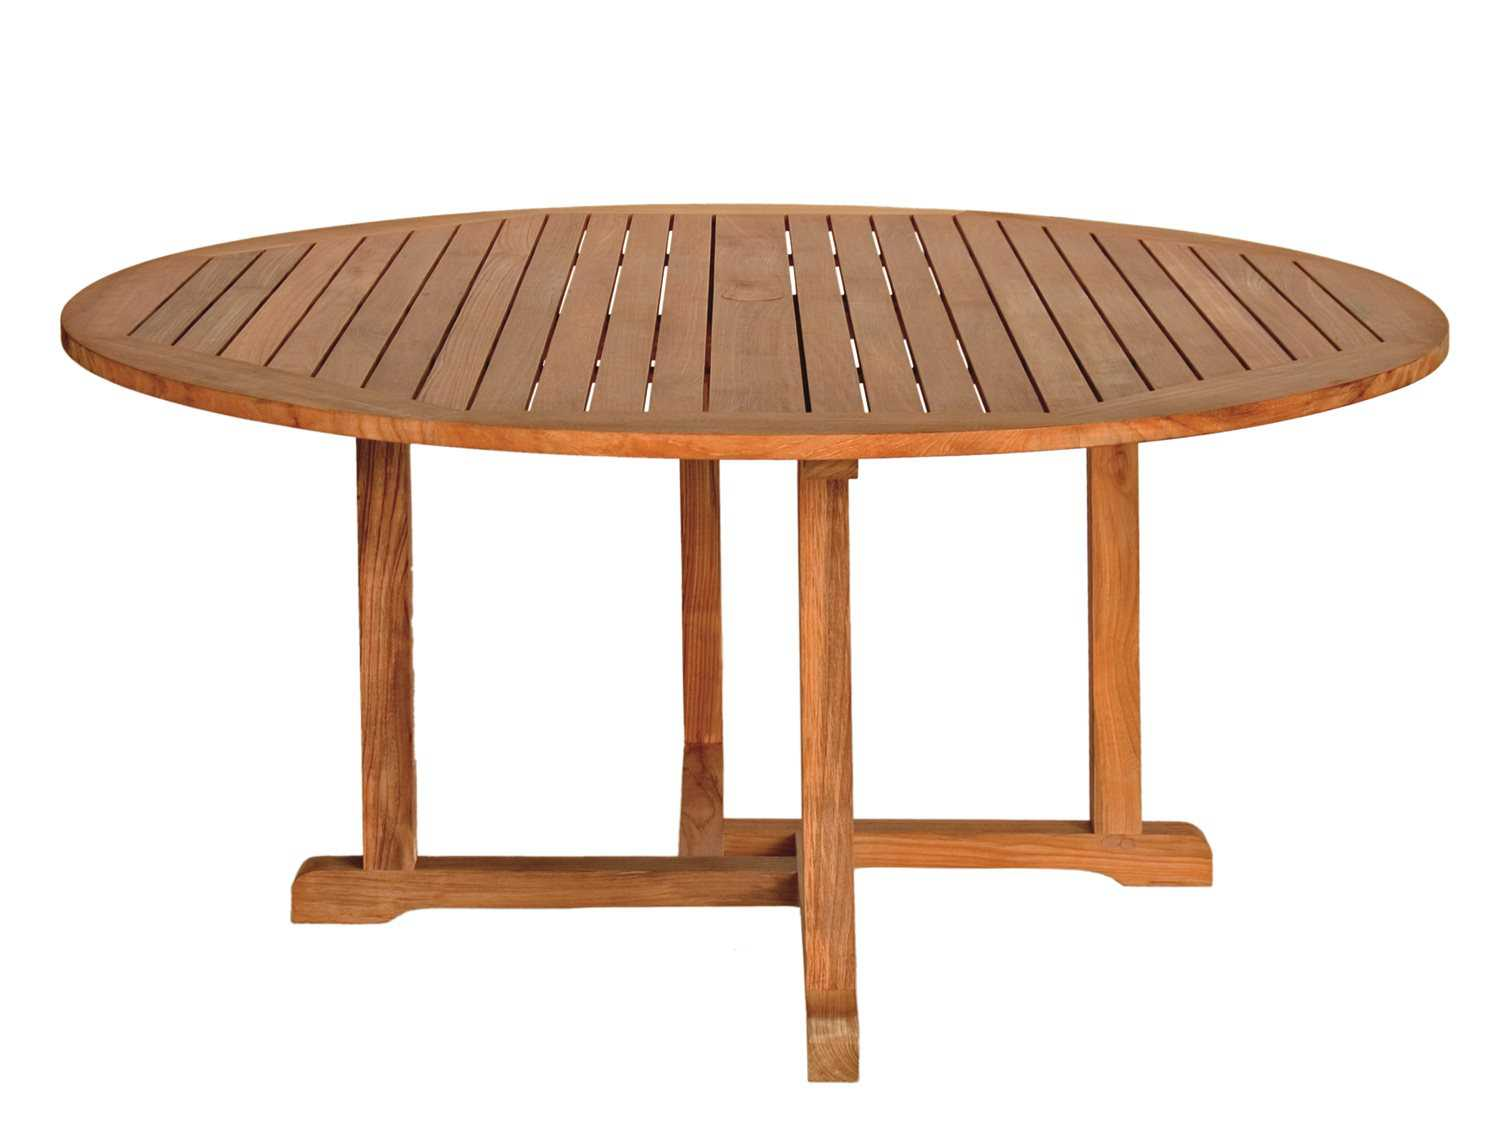 Three Birds Casual Oxford Teak 60 Round Dining Table RD60